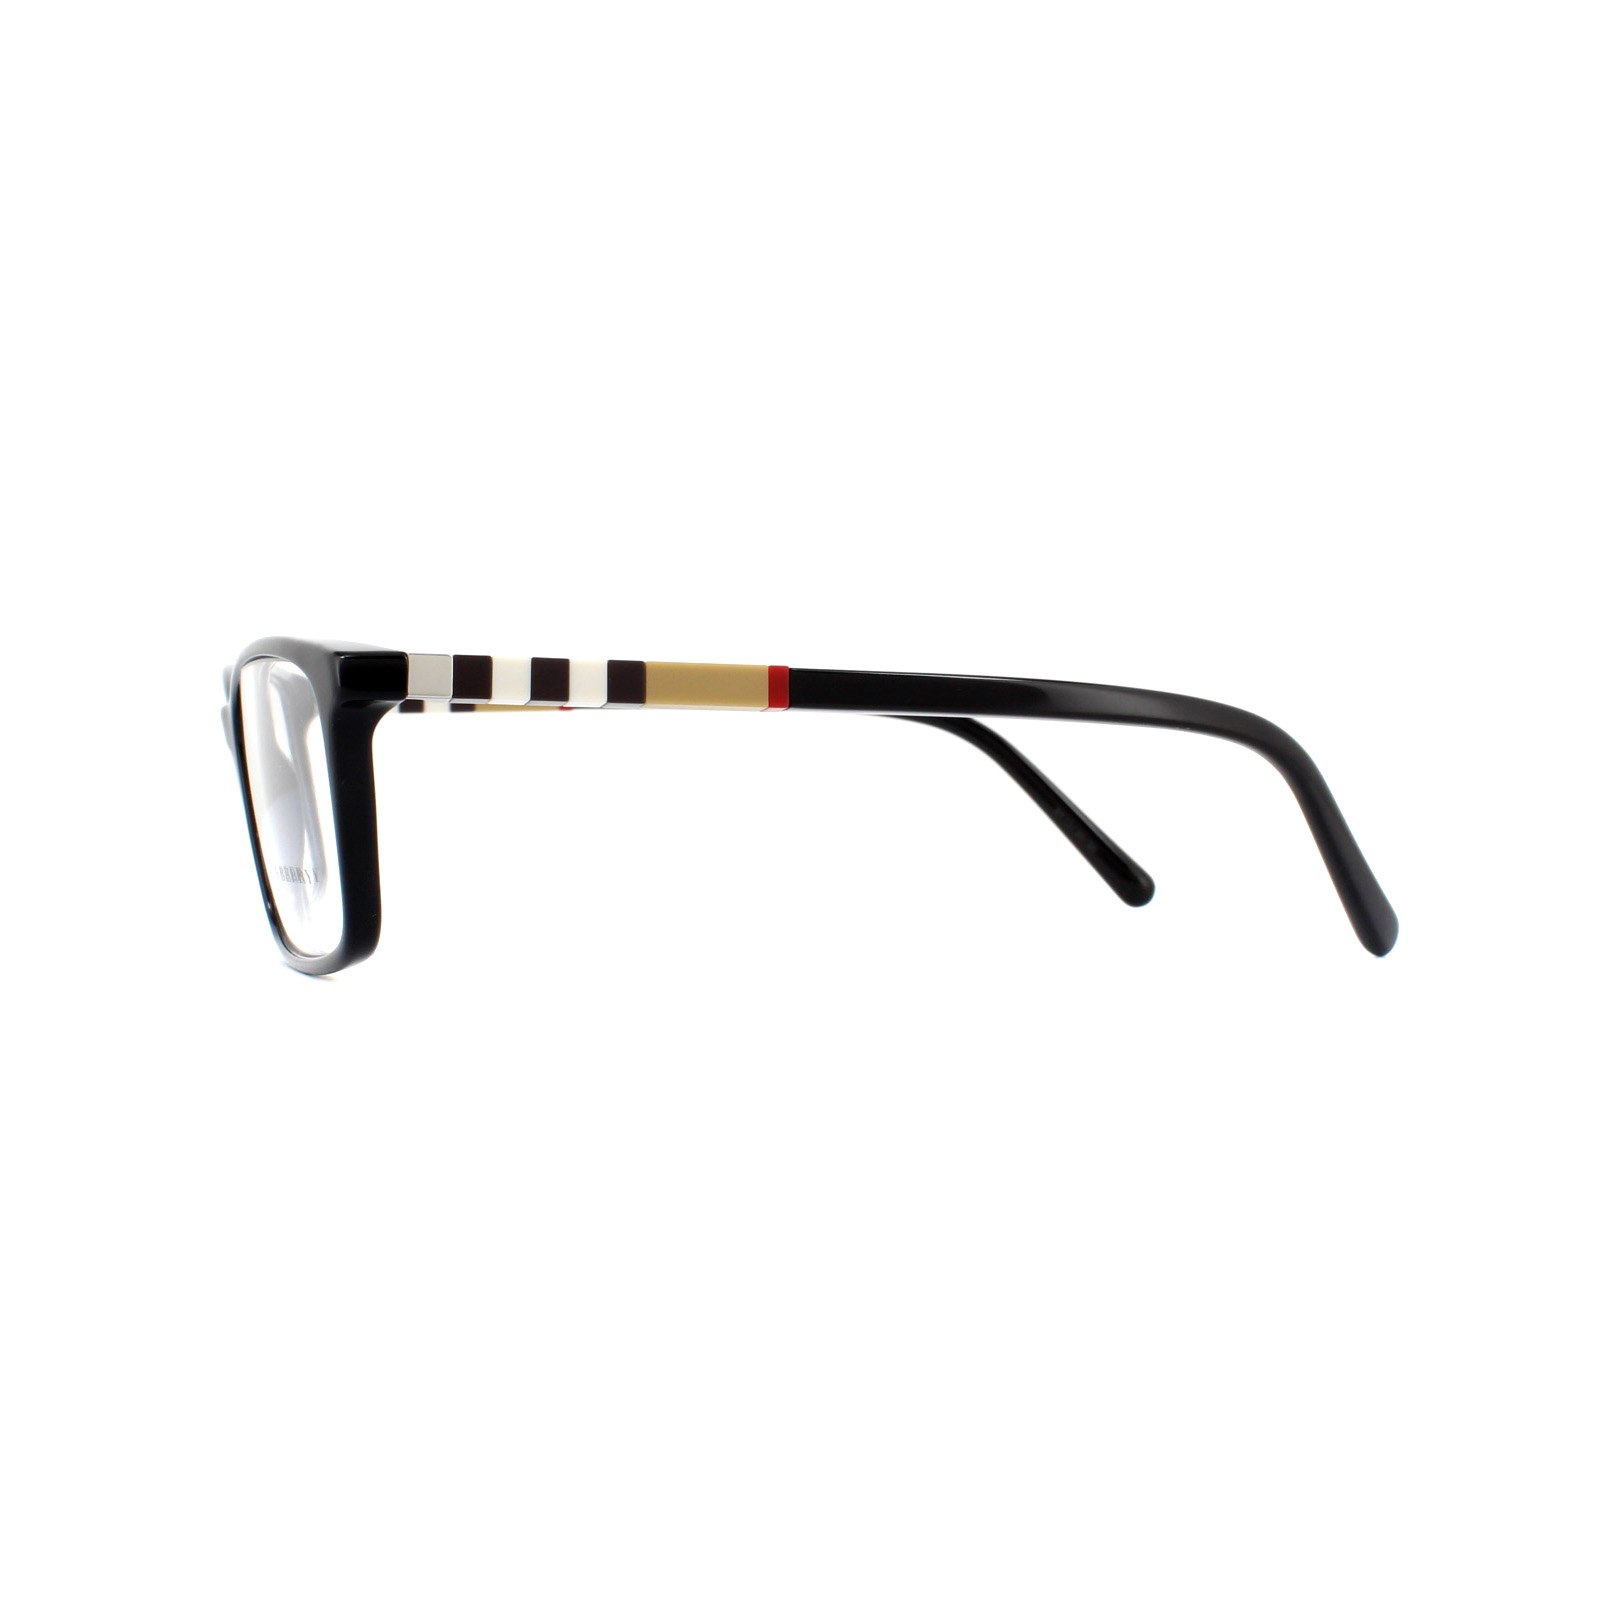 e6c29912dbd Burberry Glasses Frames BE 2199 3001 Black 53mm Mens 8053672417302 ...